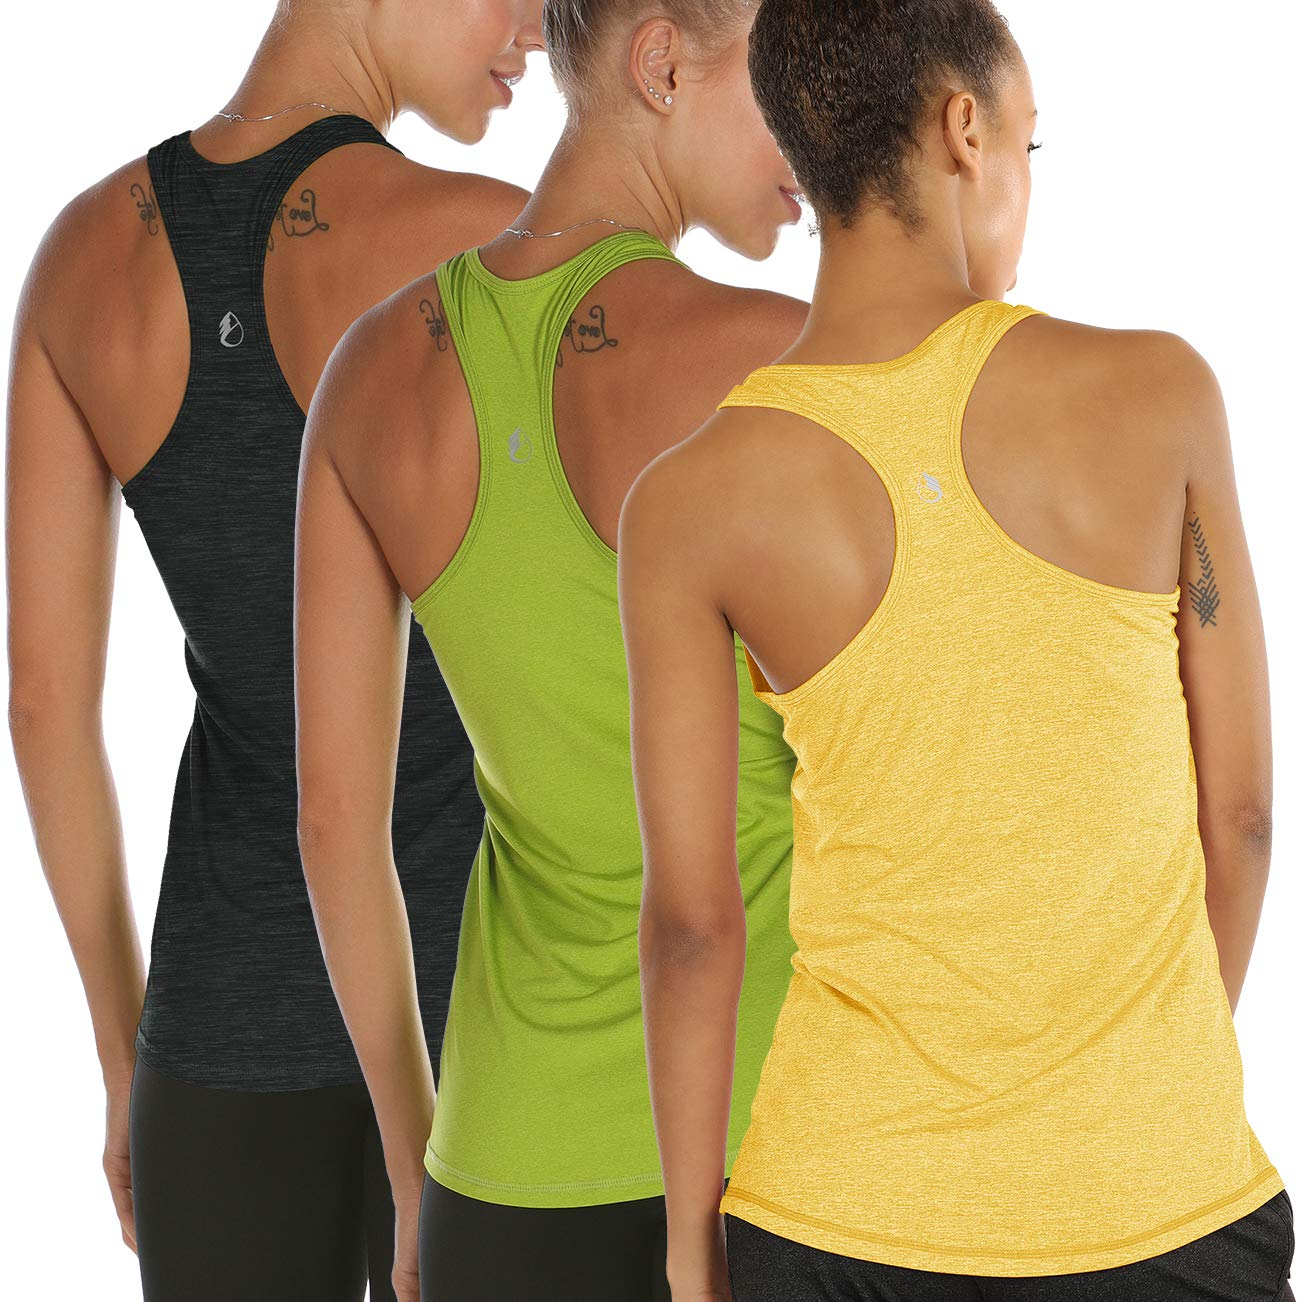 icyzone Workout Tank Tops for Women - Racerback Athletic Yoga Tops, Running Exercise Gym Shirts(Pack of 3) (XXL, Ombre Blue/Spectra Yellow/Green Glow) by icyzone